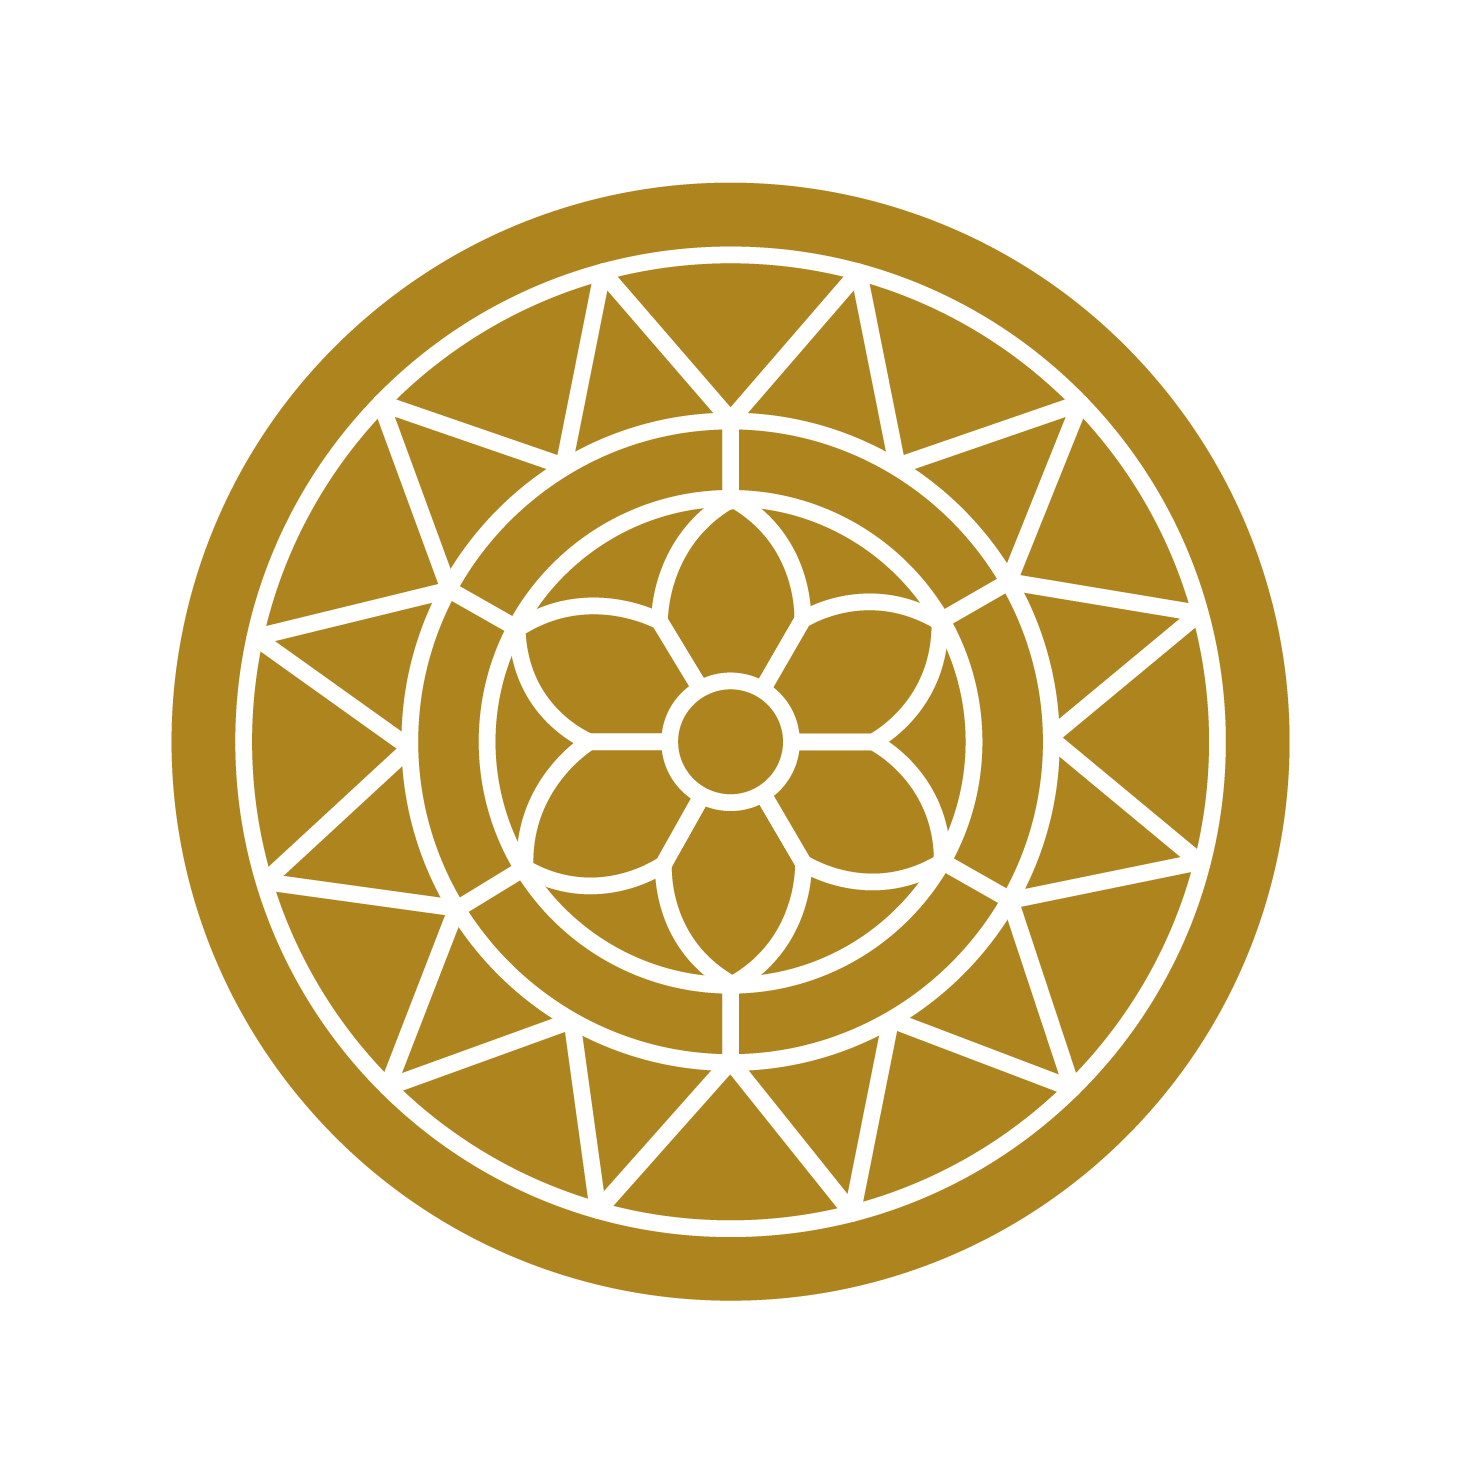 Founders Circle logo with white text